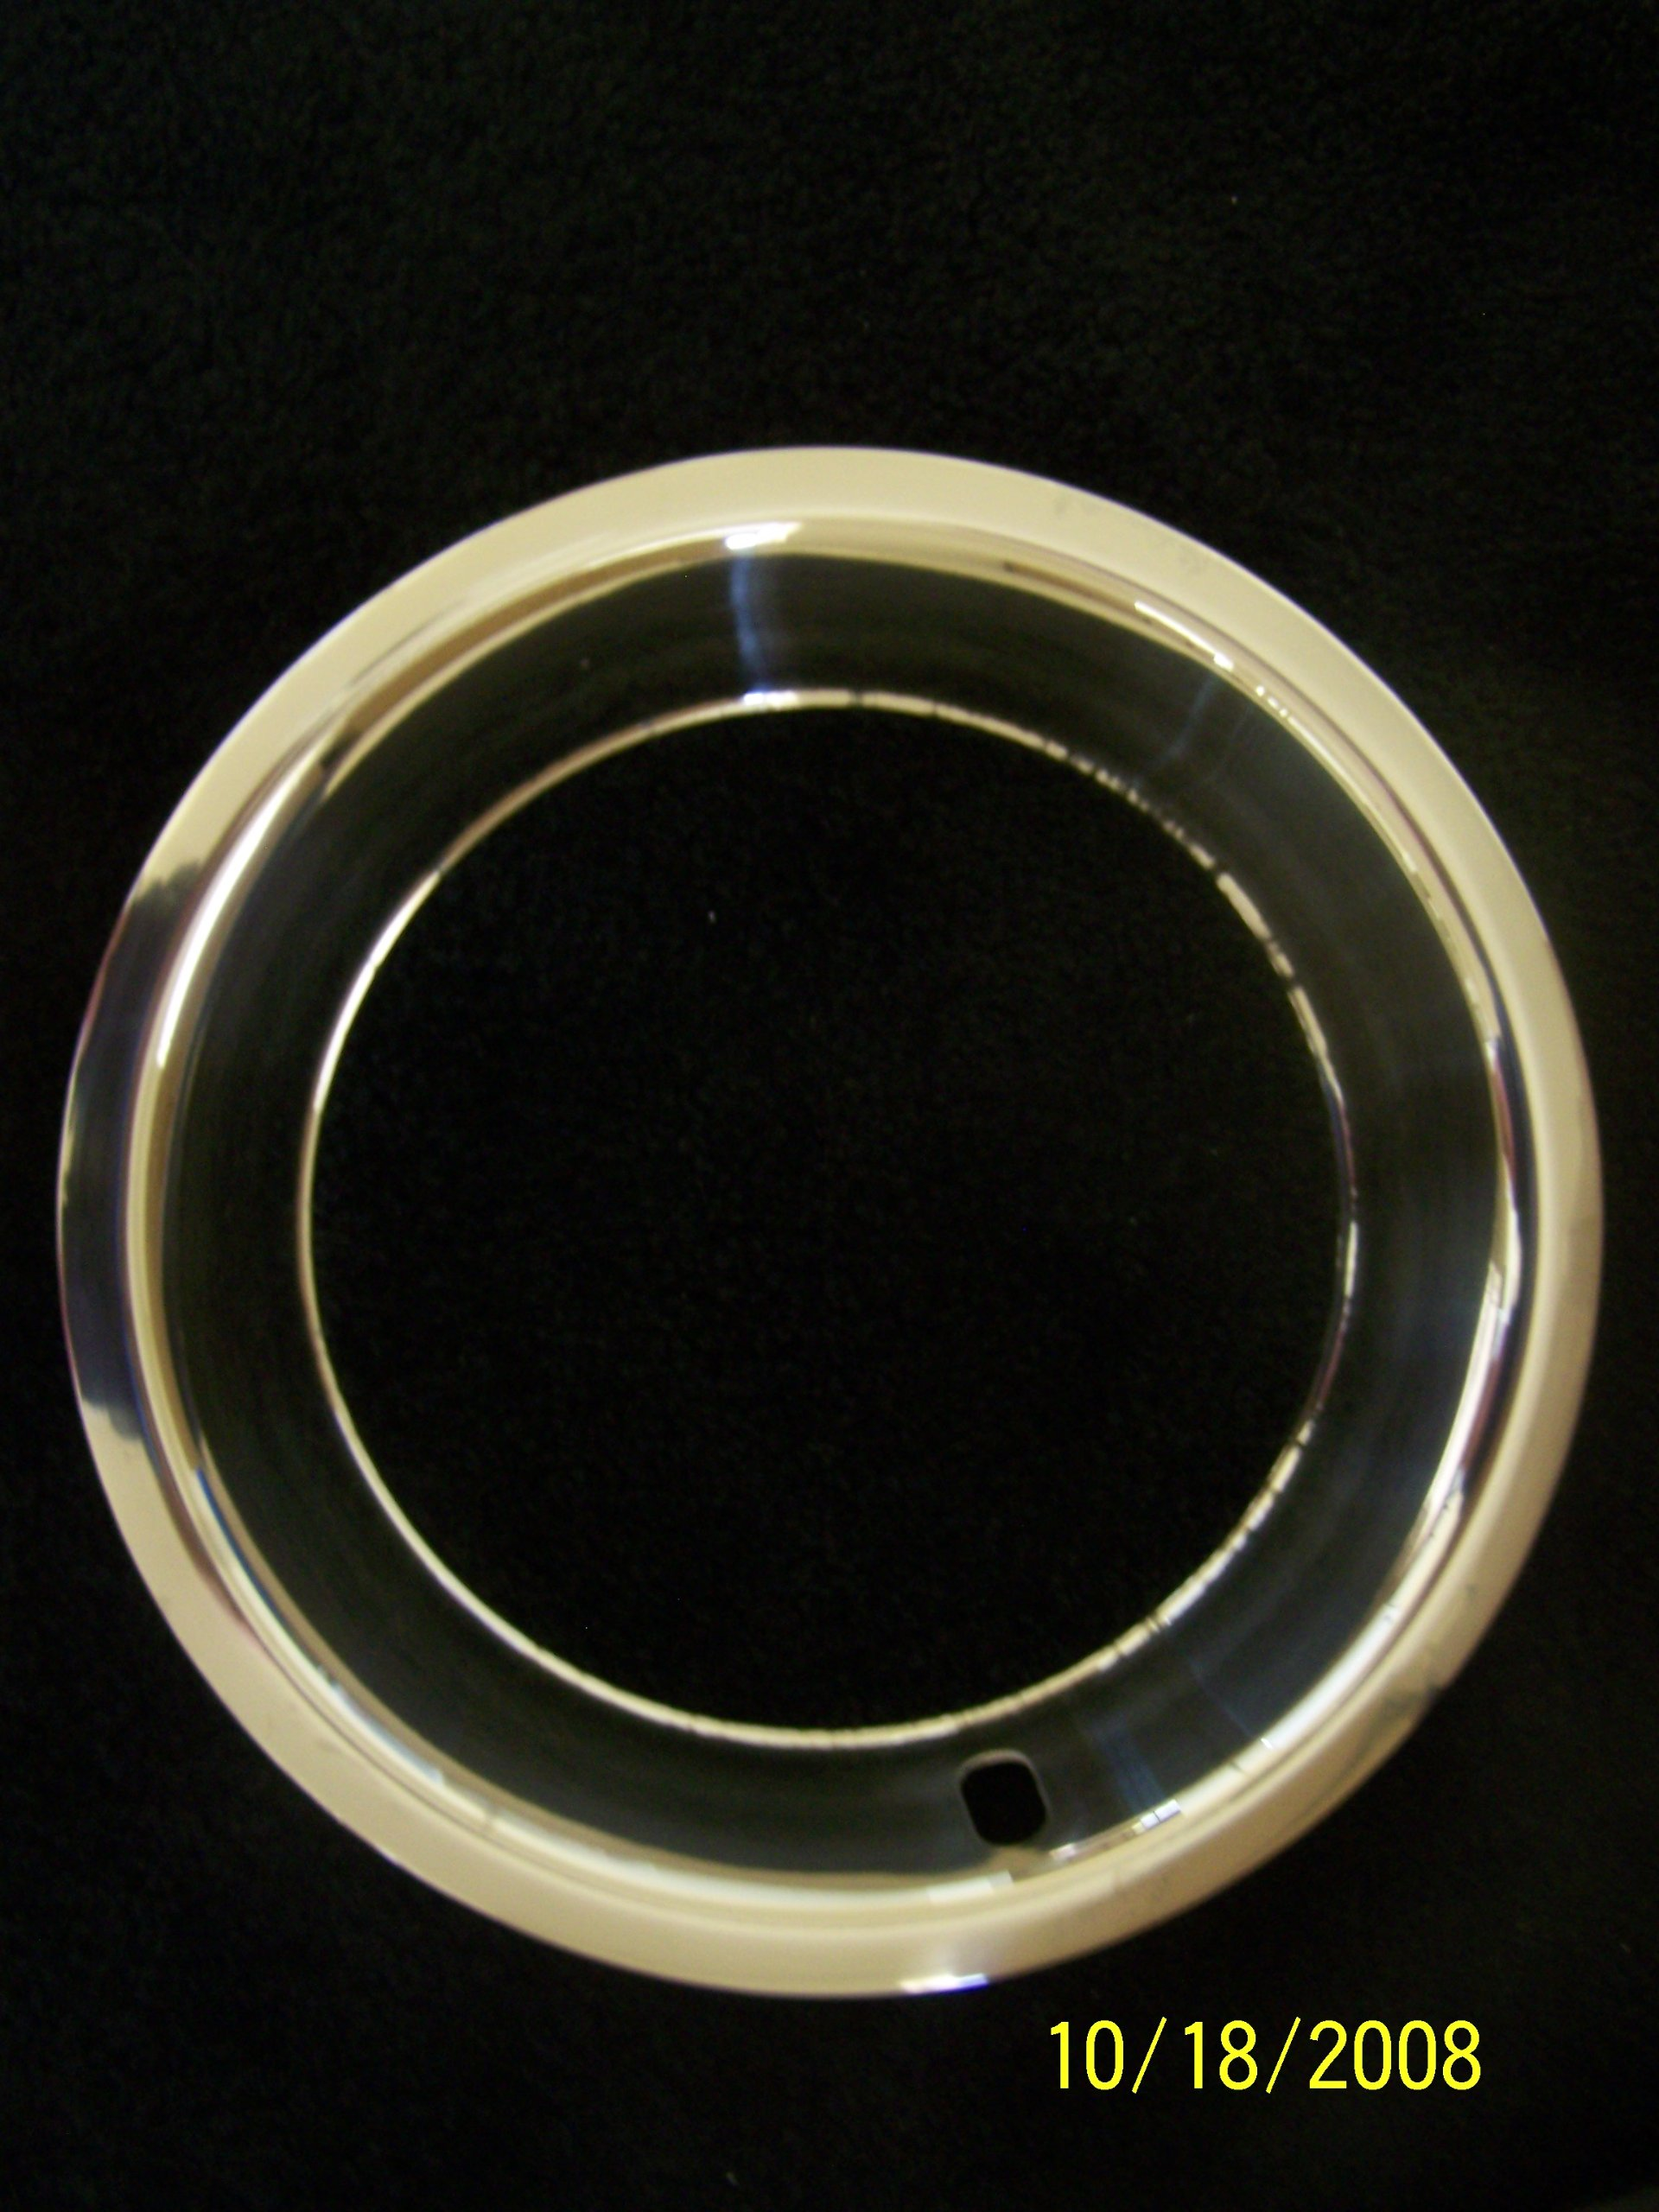 Eagle Flight 15x8 Deep Dish Chrome Plated Stainless Steel Beauty Trim Rings by Eagle Flight